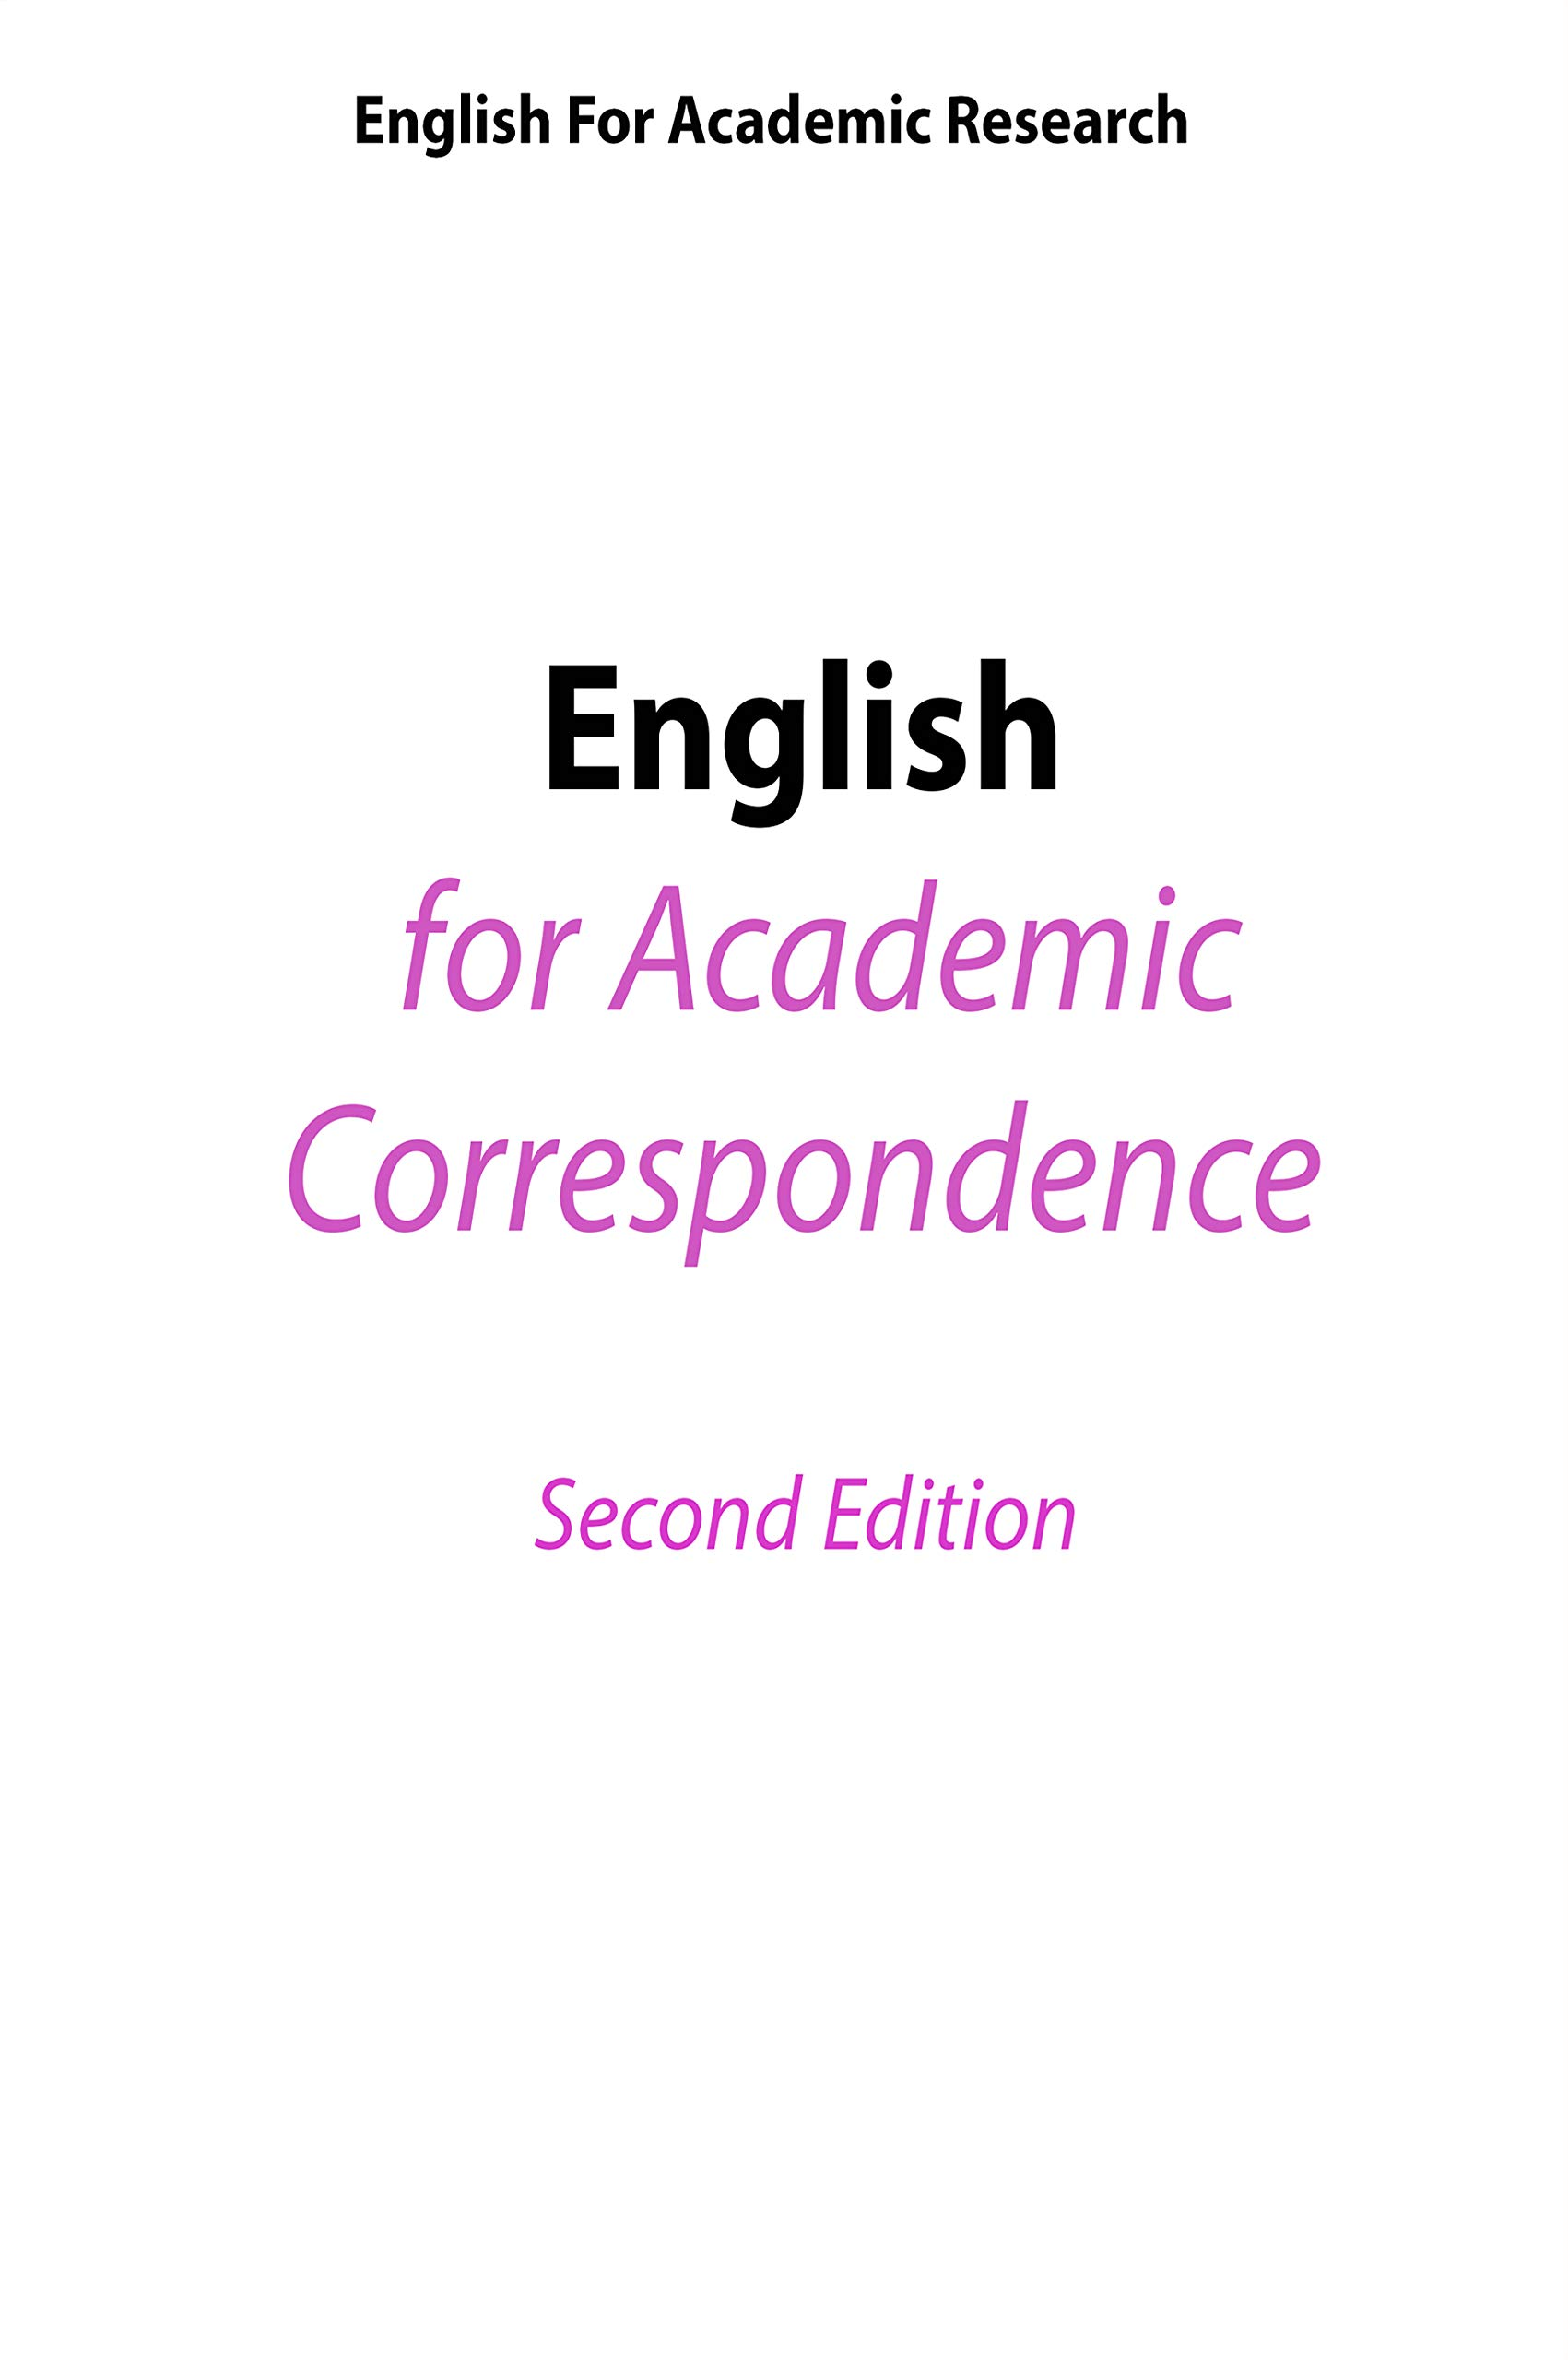 English for Academic Research - English for Academic Correspondence - Limited Edition